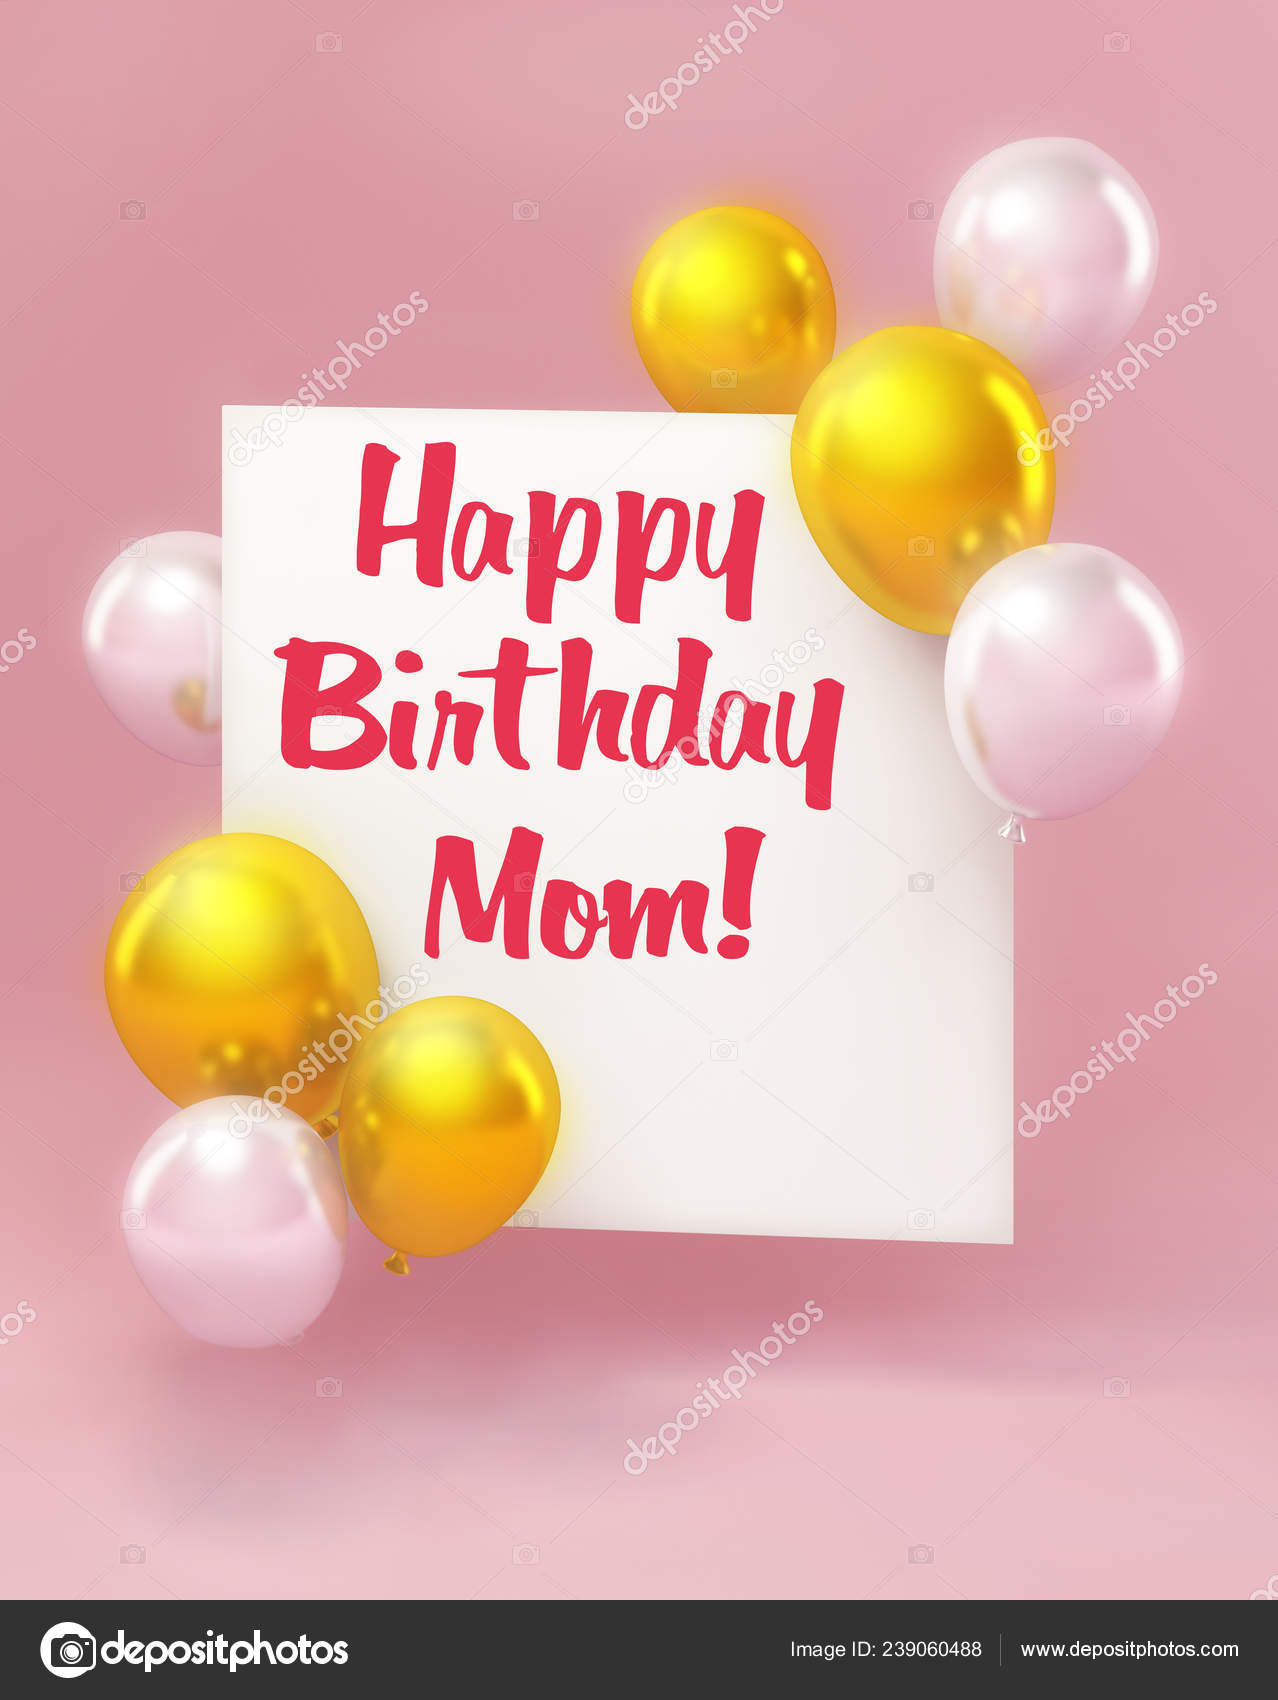 Happy Birthday Mom Greeting Card Style Balloons Pink Stock Photo